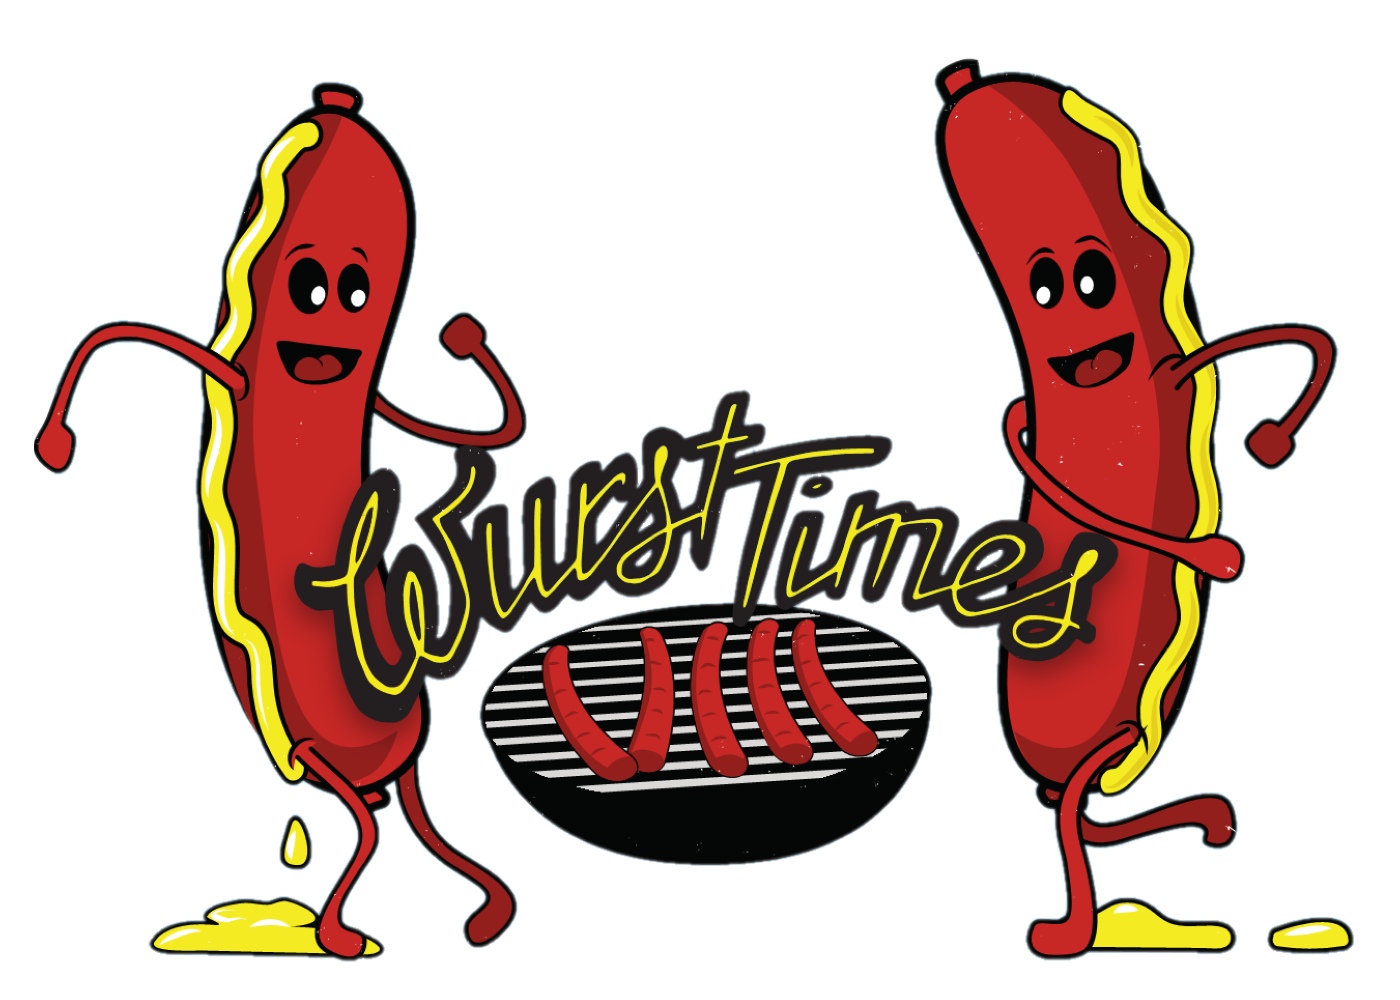 The Wurst Times Festival